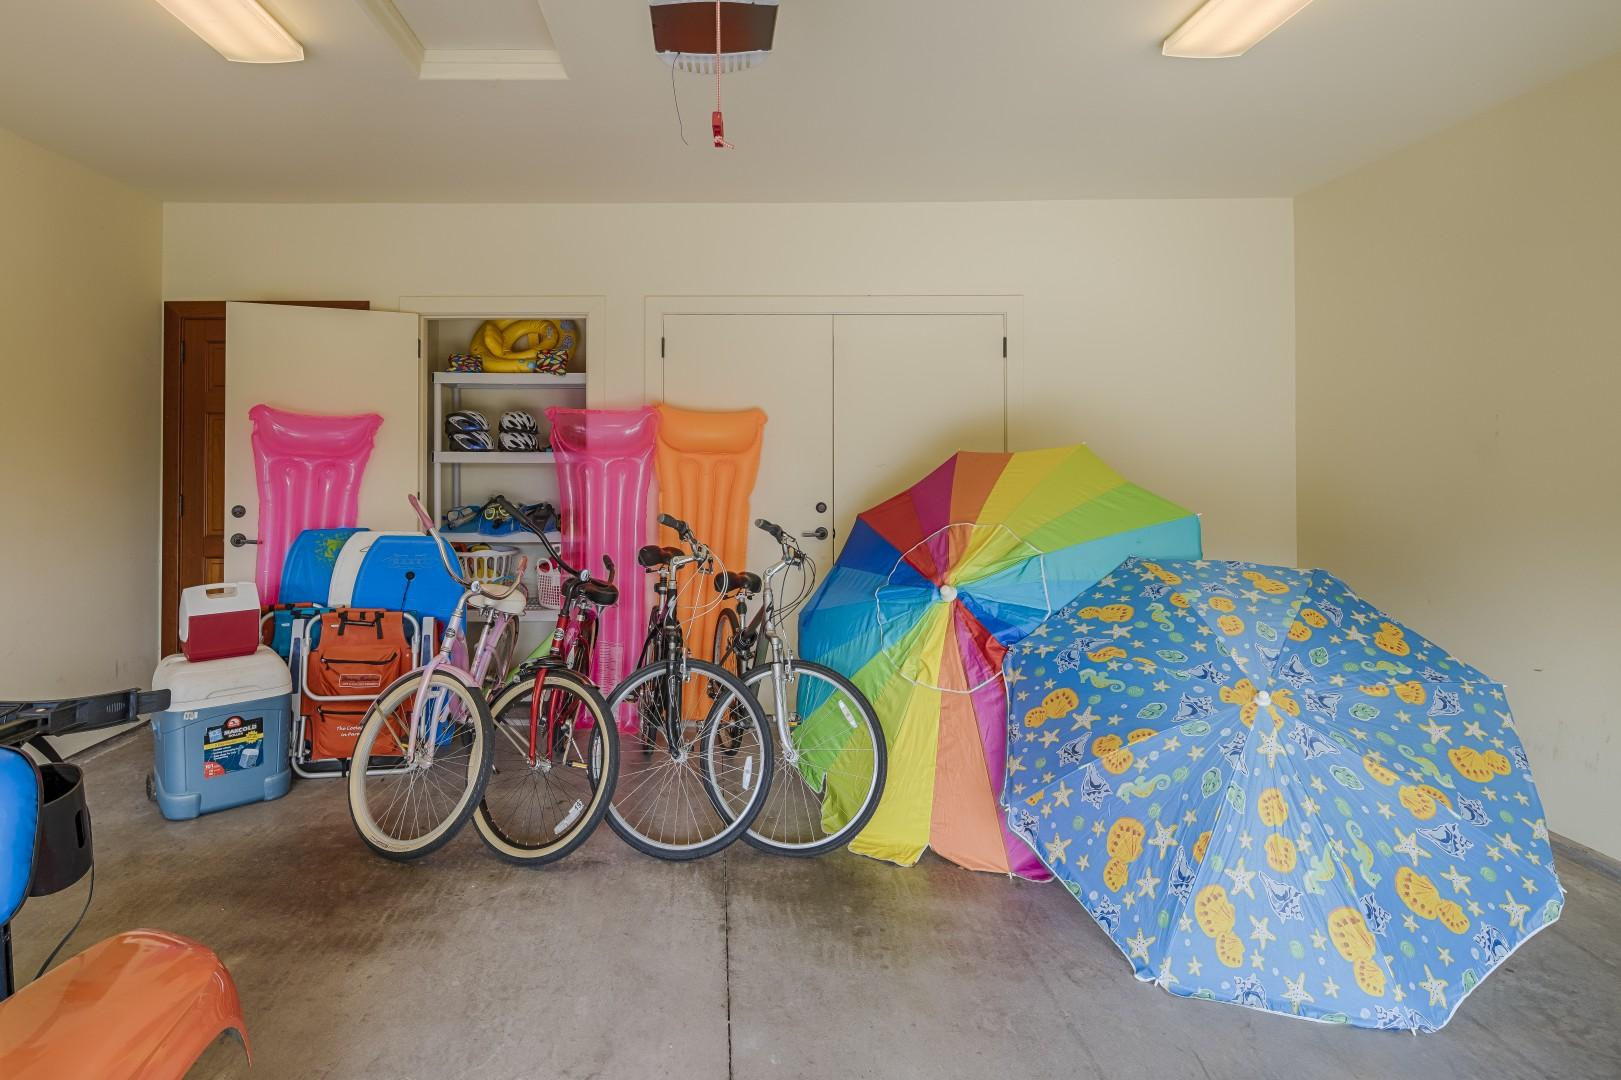 Lots of beach toys, beach bikes and everything you need to make your stay by the beach a memorable one!